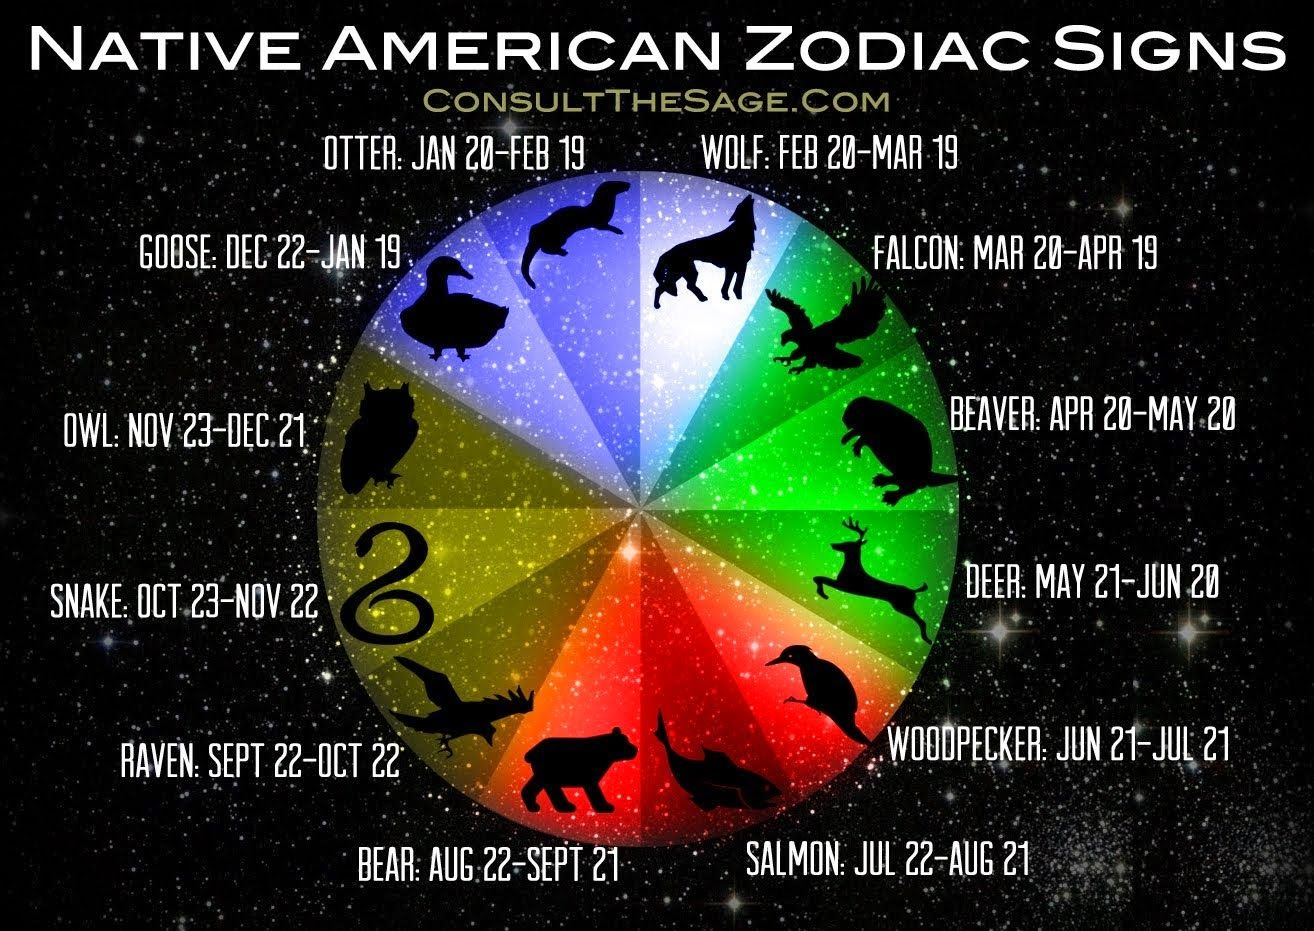 I am posting this because the descriptions made me chuckle so native american zodiac animal symbols can encompass just about all the animals and their buycottarizona